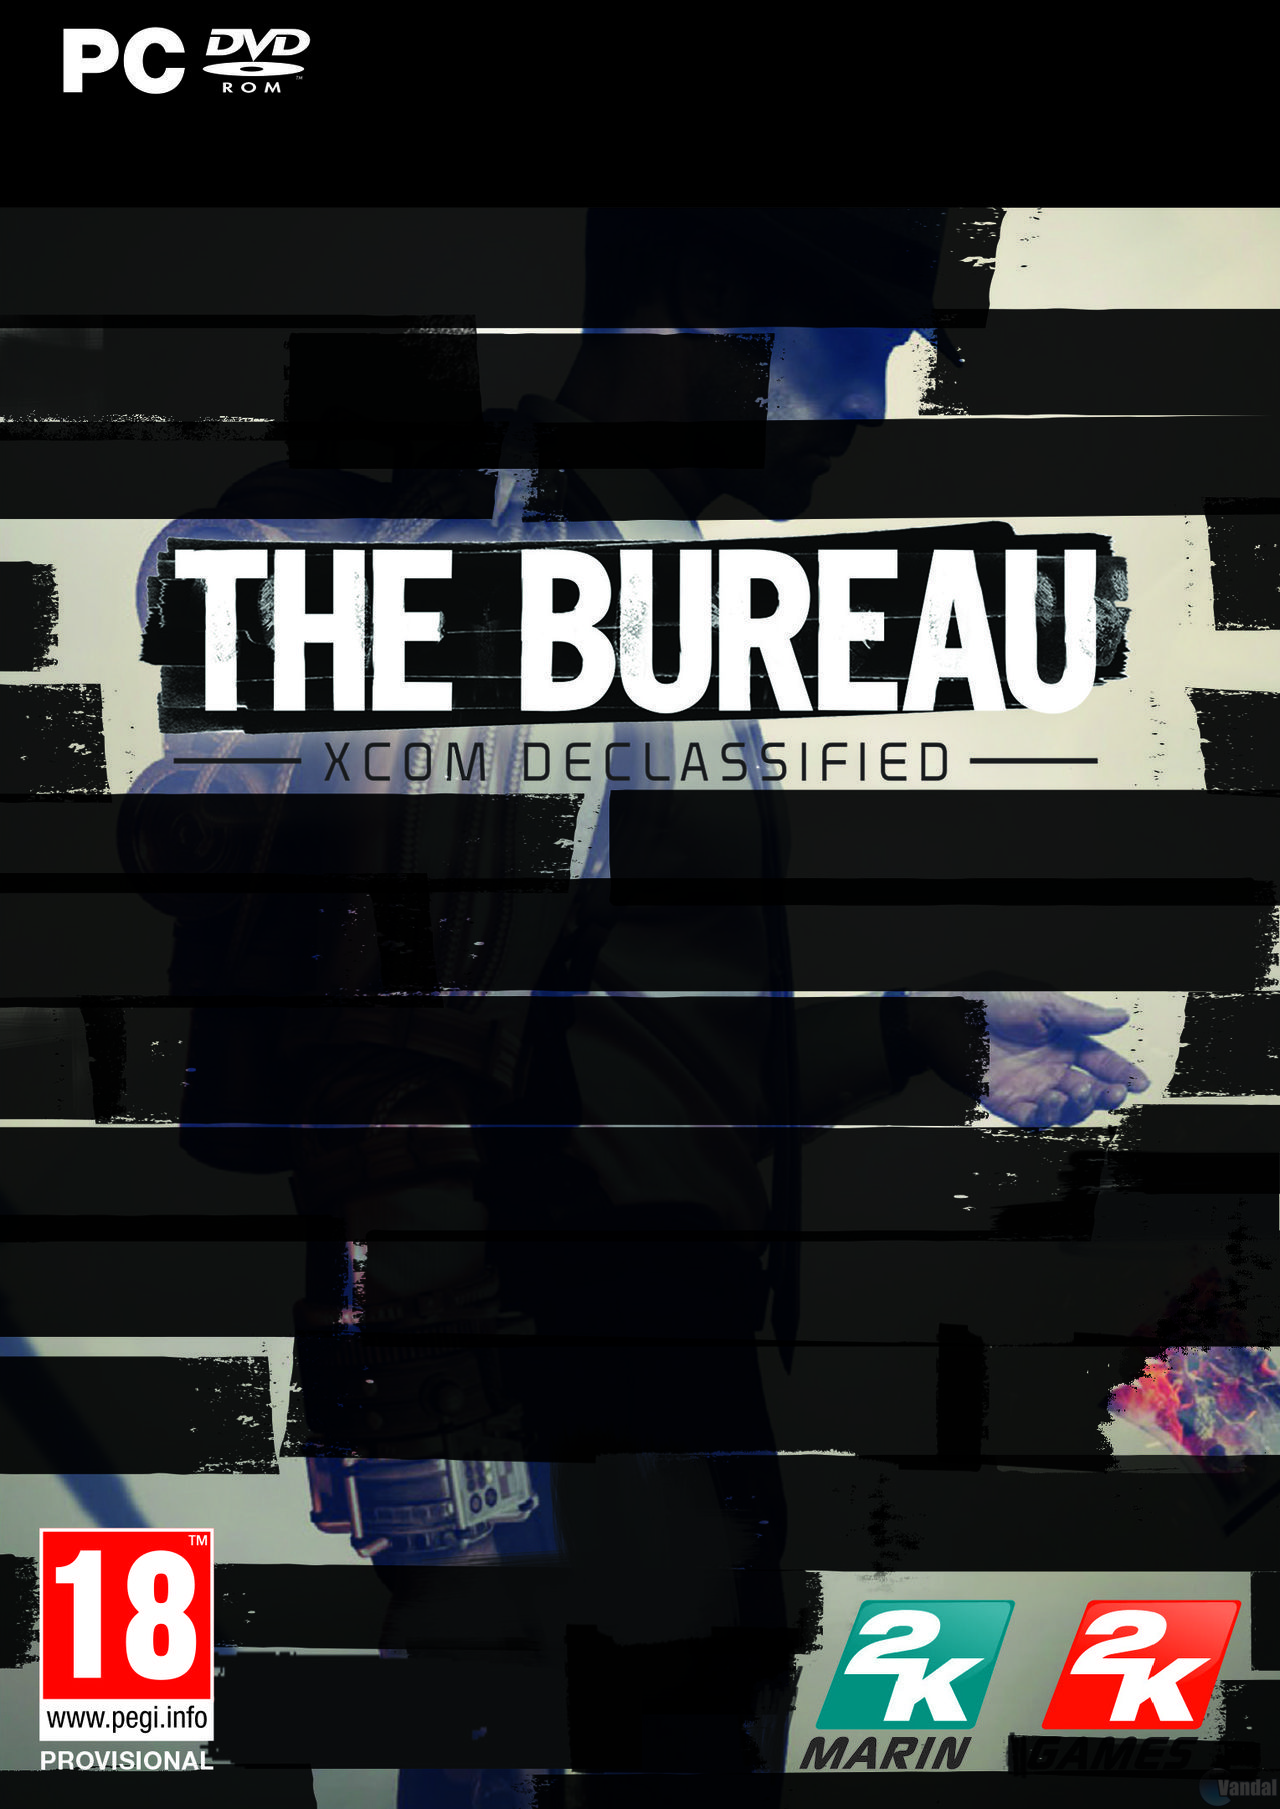 The Bureau: XCOM Declassified saldrá el 23 de agosto